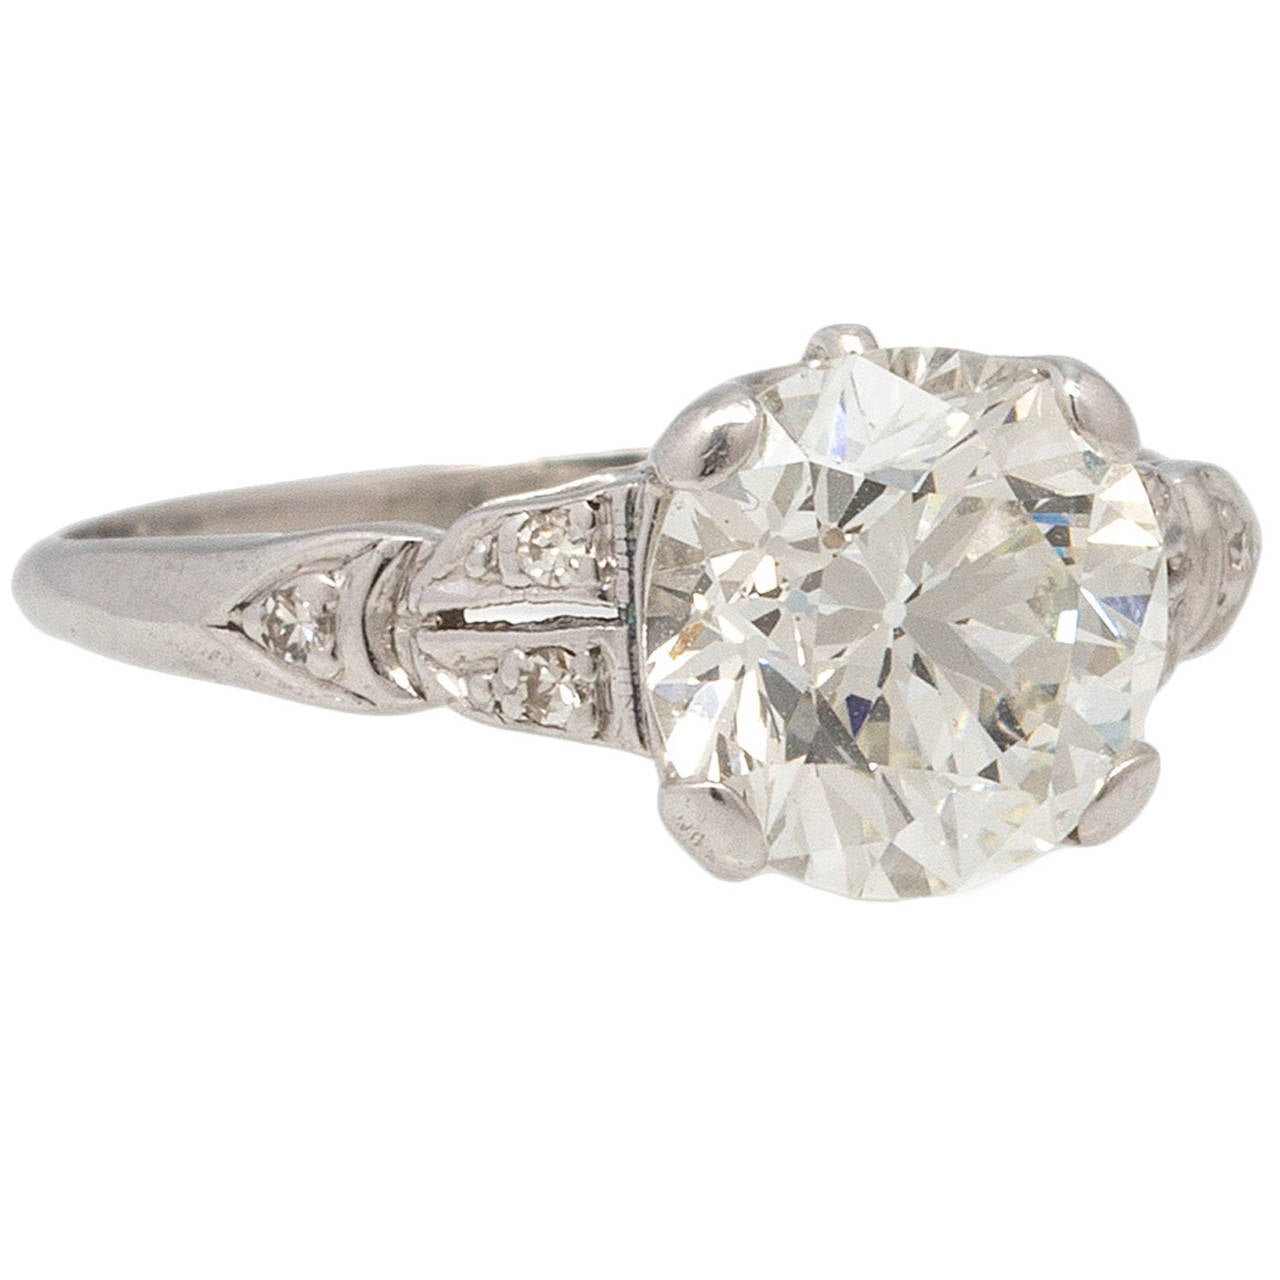 Vintage Engagement Ring Platinum 2.05ct I/VS2 circa 1930s ...